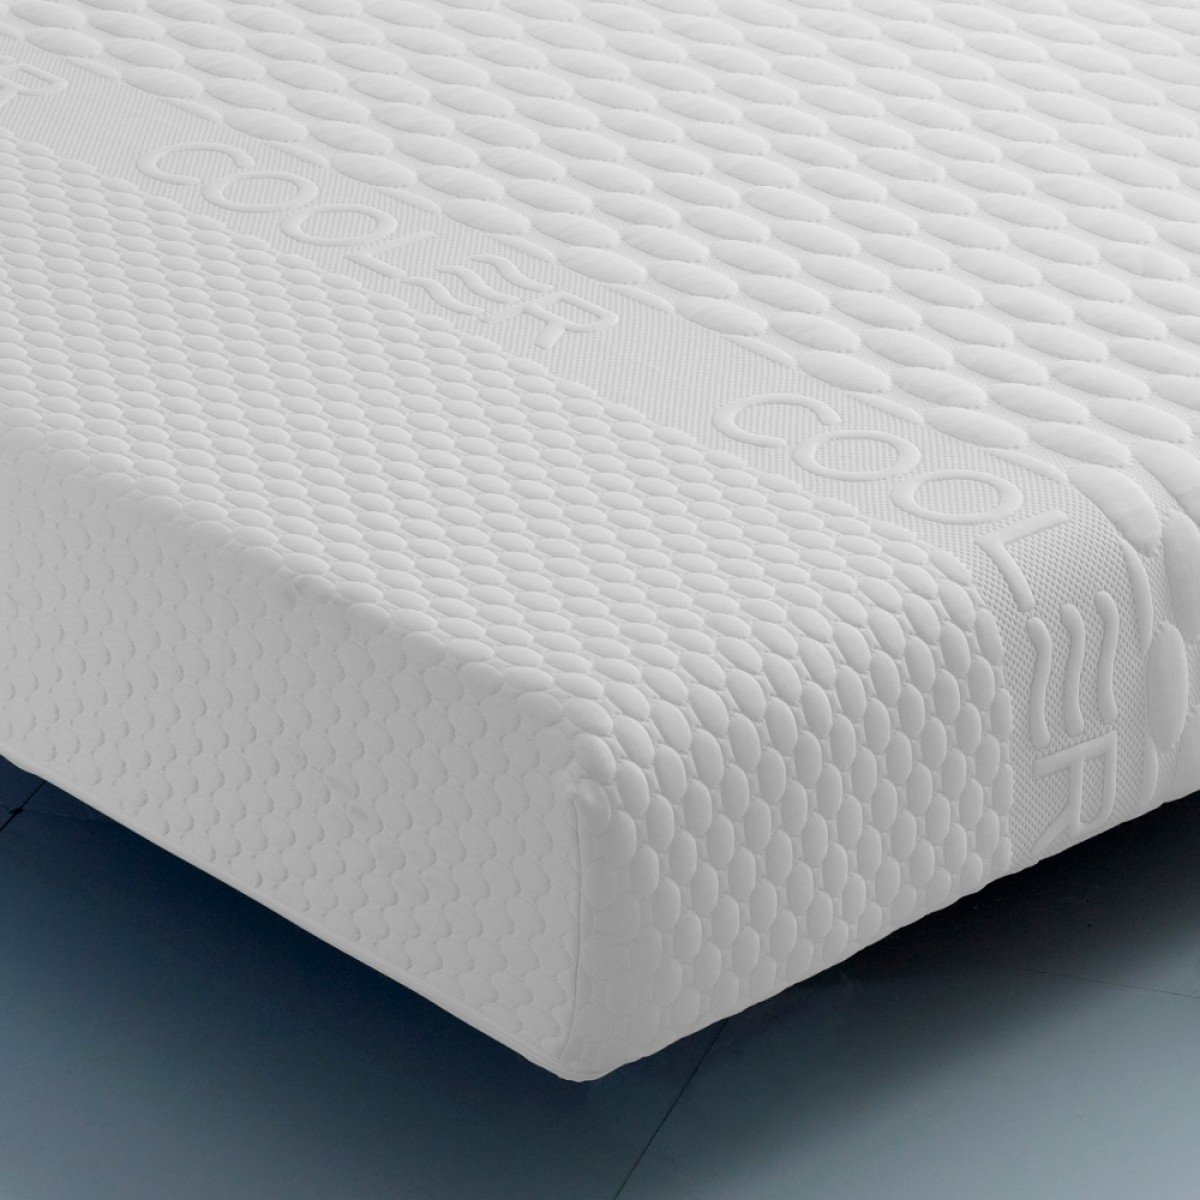 Pocket Memory Foam 4000 Individual Sprung Orthopaedic Mattress